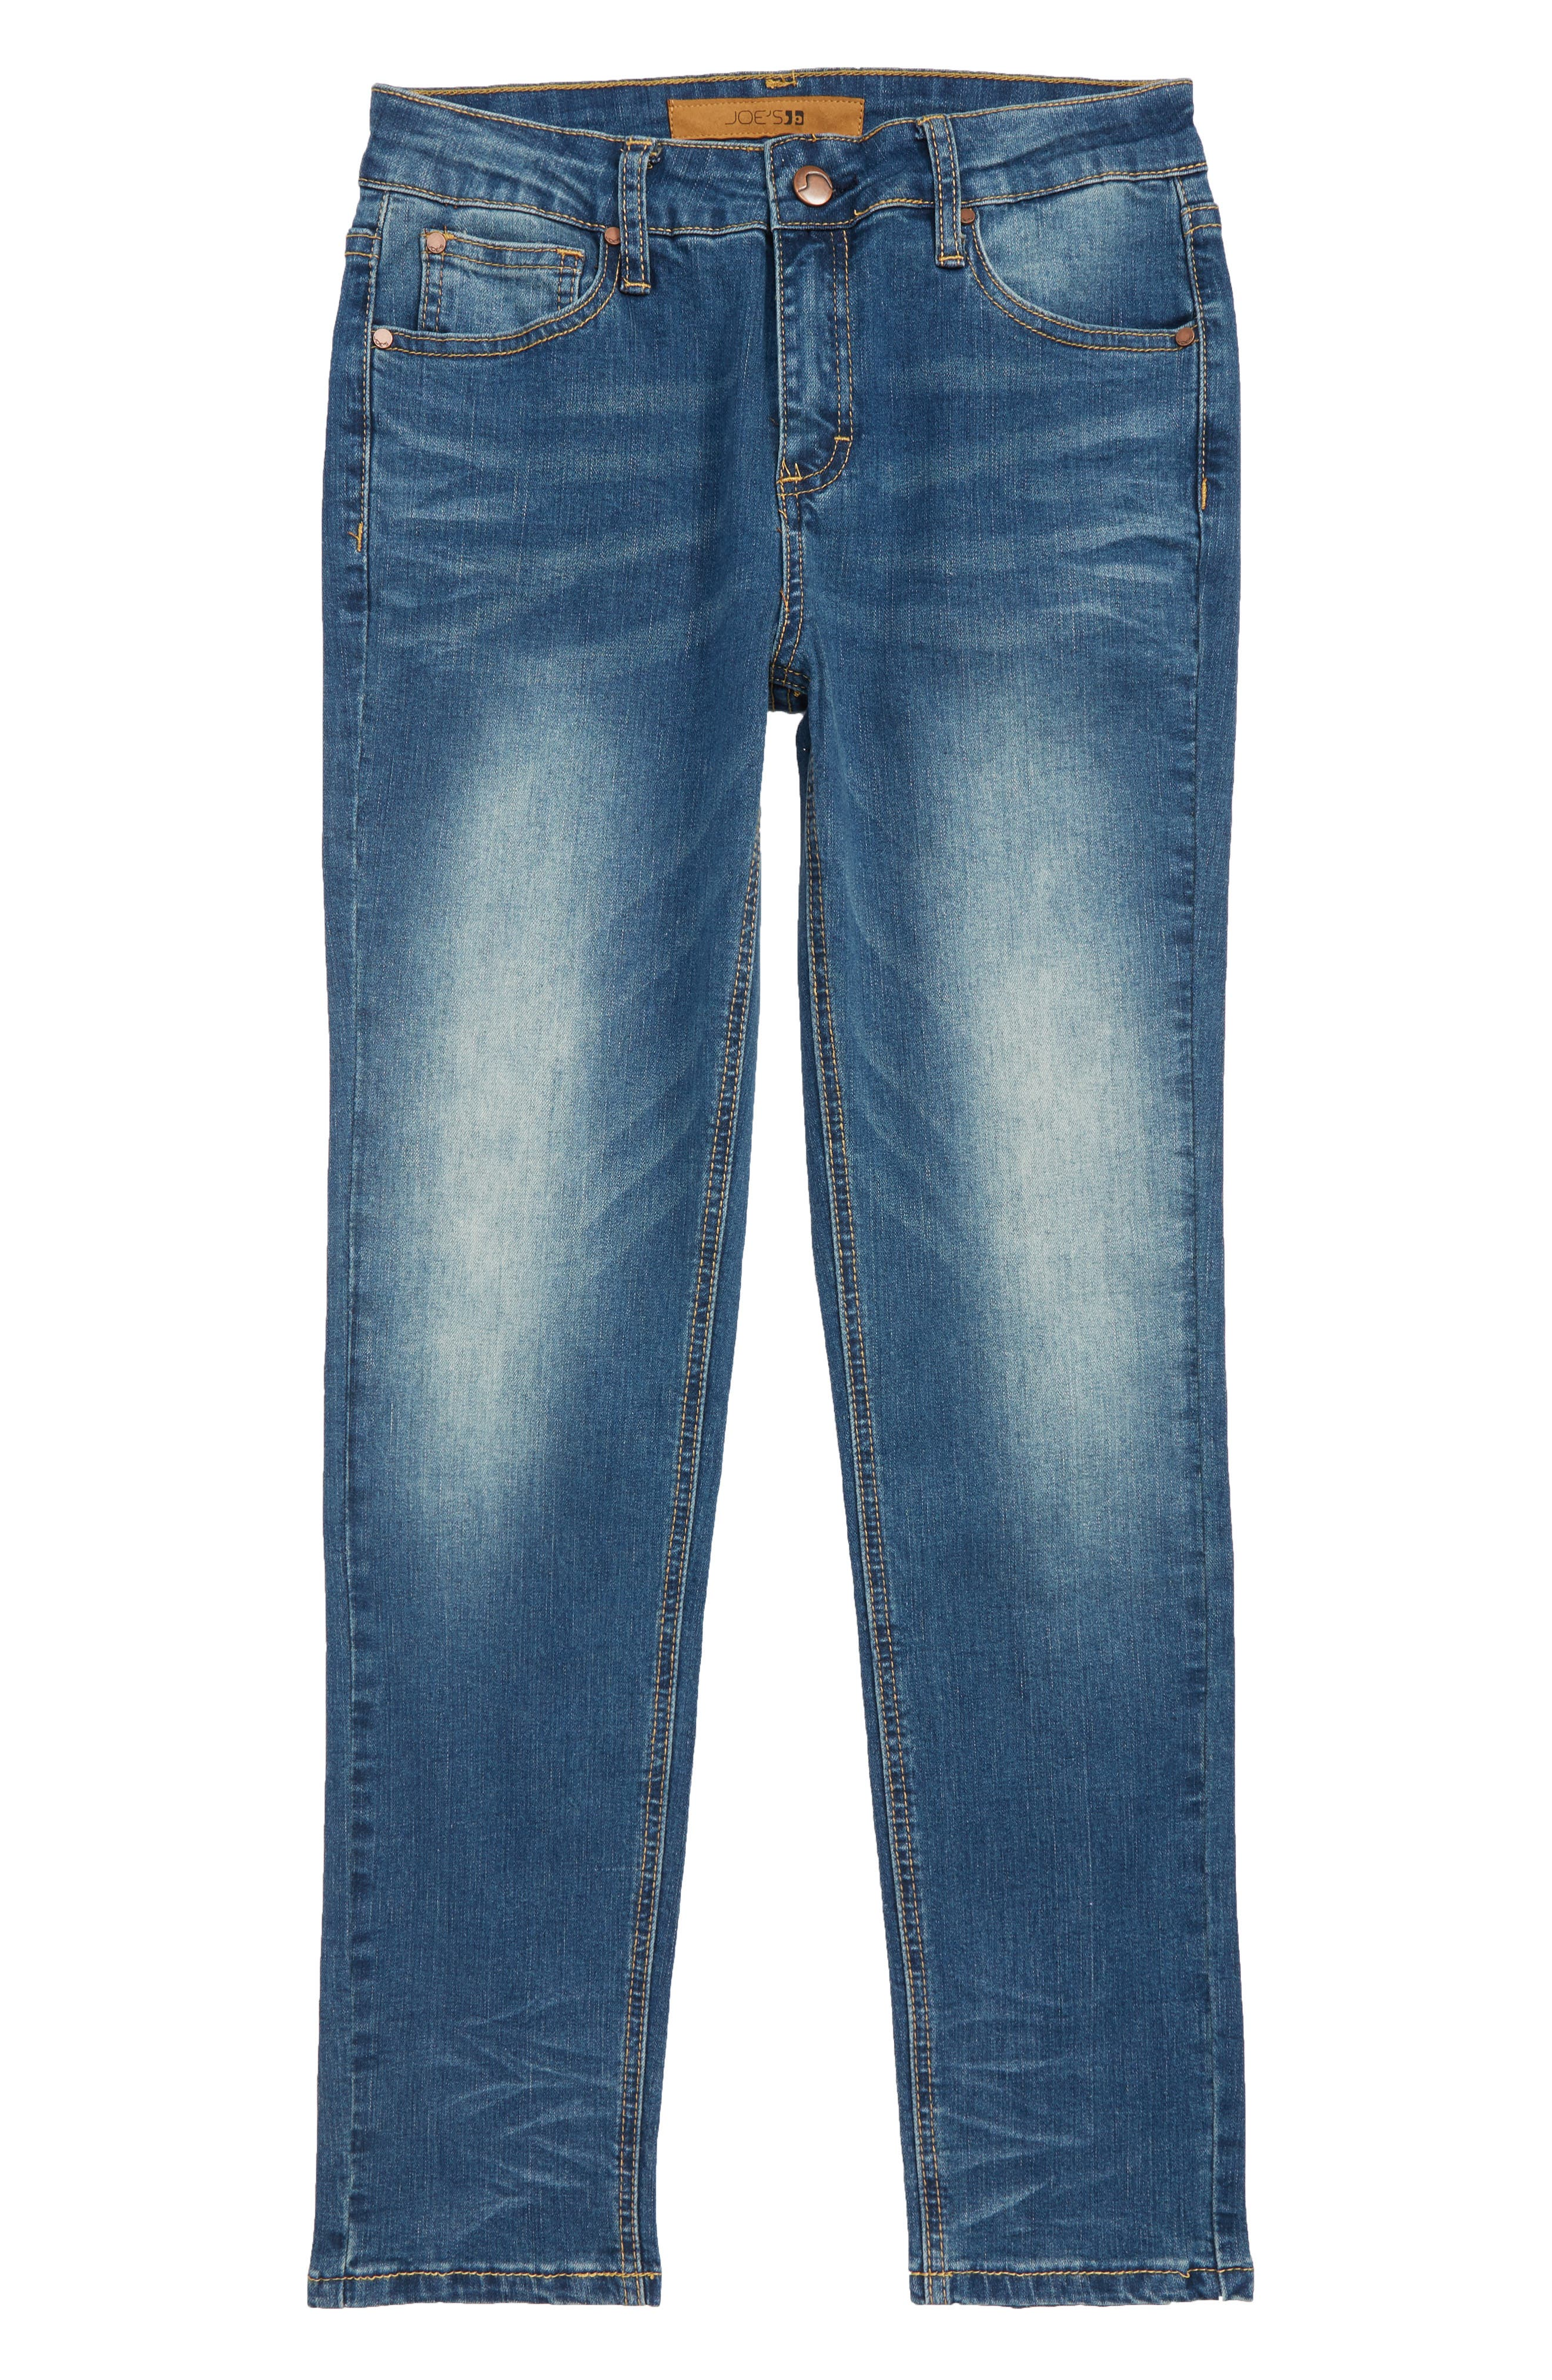 Brixton Straight Leg Stretch Jeans,                             Main thumbnail 1, color,                             FOSSIL